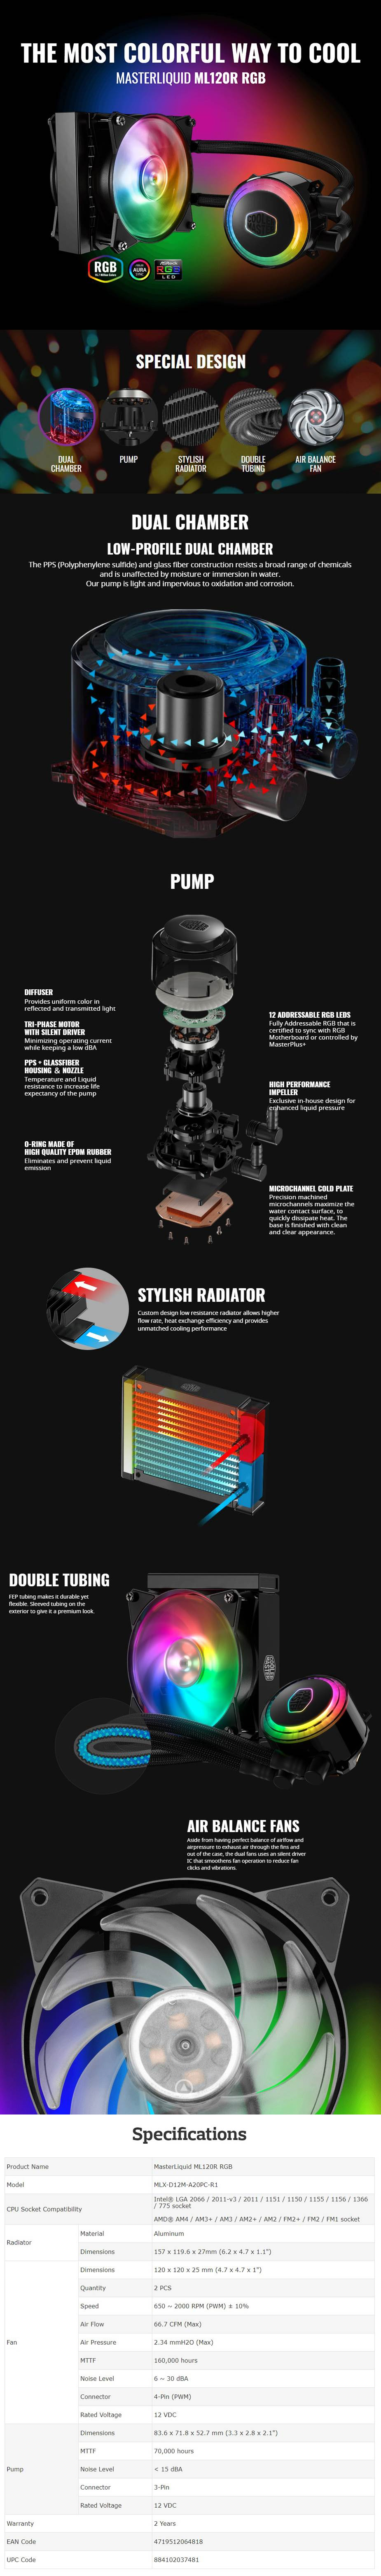 Cooler Master Masterliquid ML120R RGB AIO CPU Cooler (MLX-D12M-A20PC-R1)